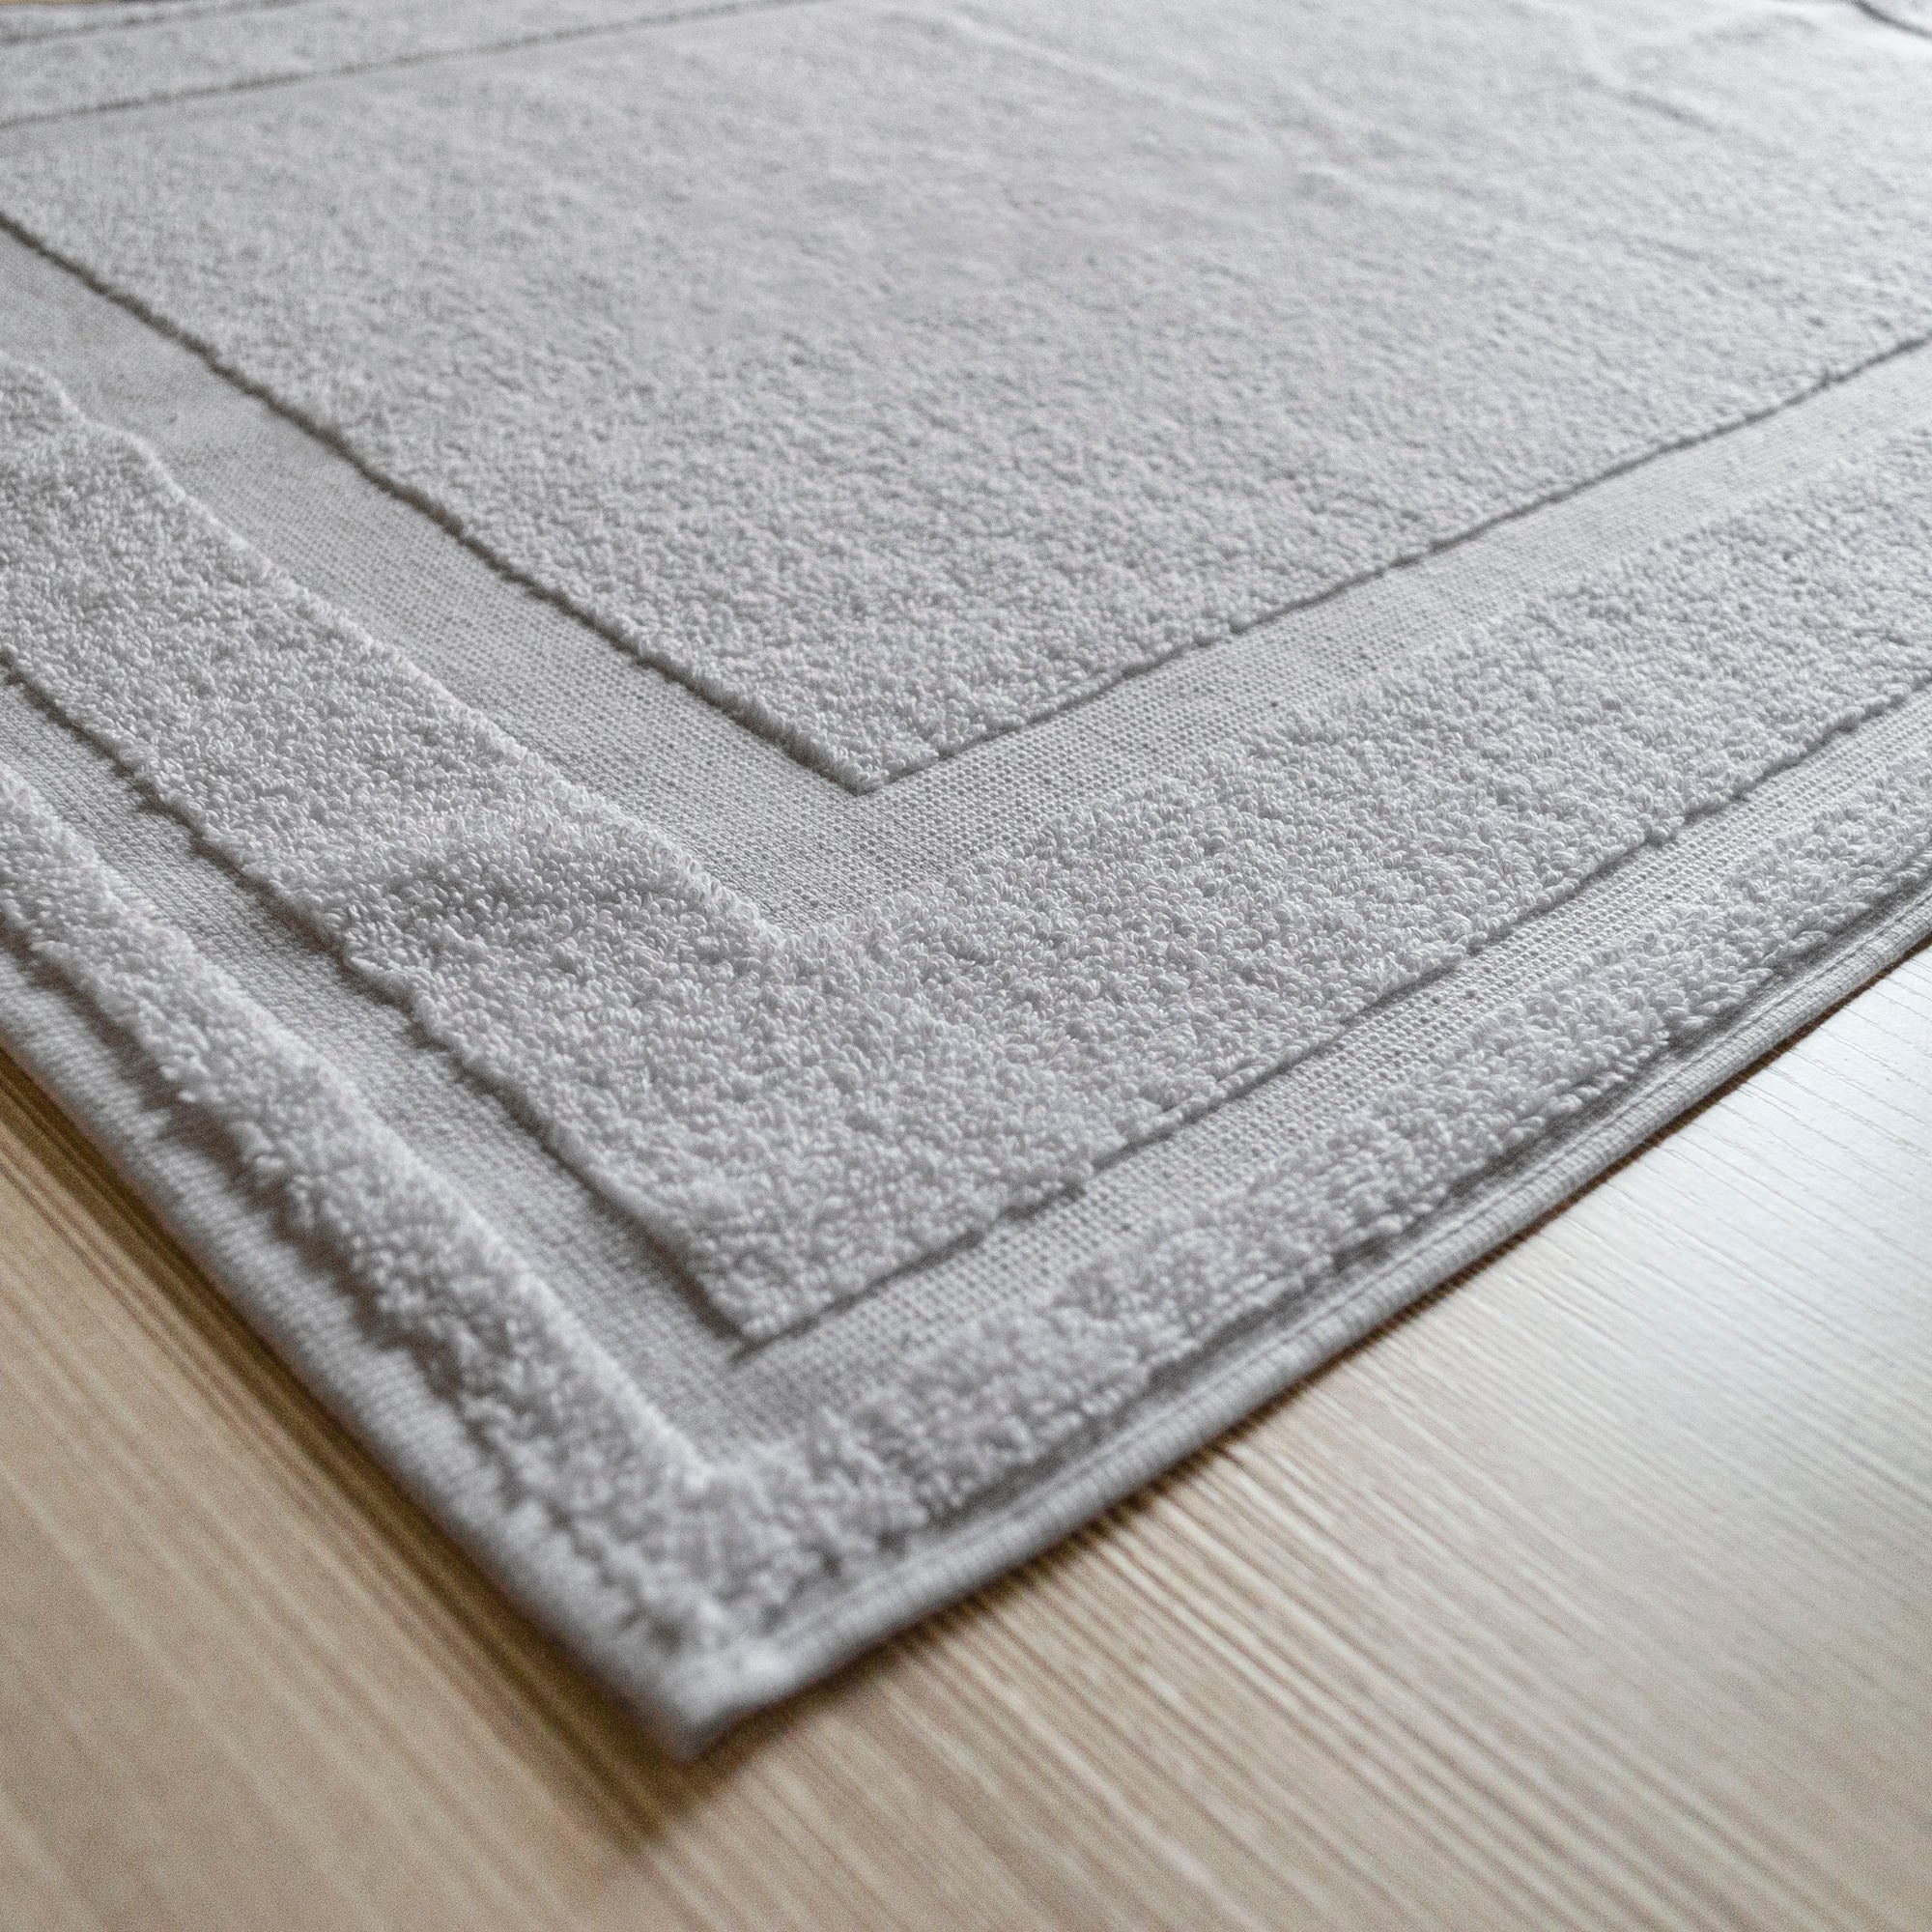 Brielle Home Emery White Terry Bath Mat 20 X 28 Inches On Sale Overstock 29611443